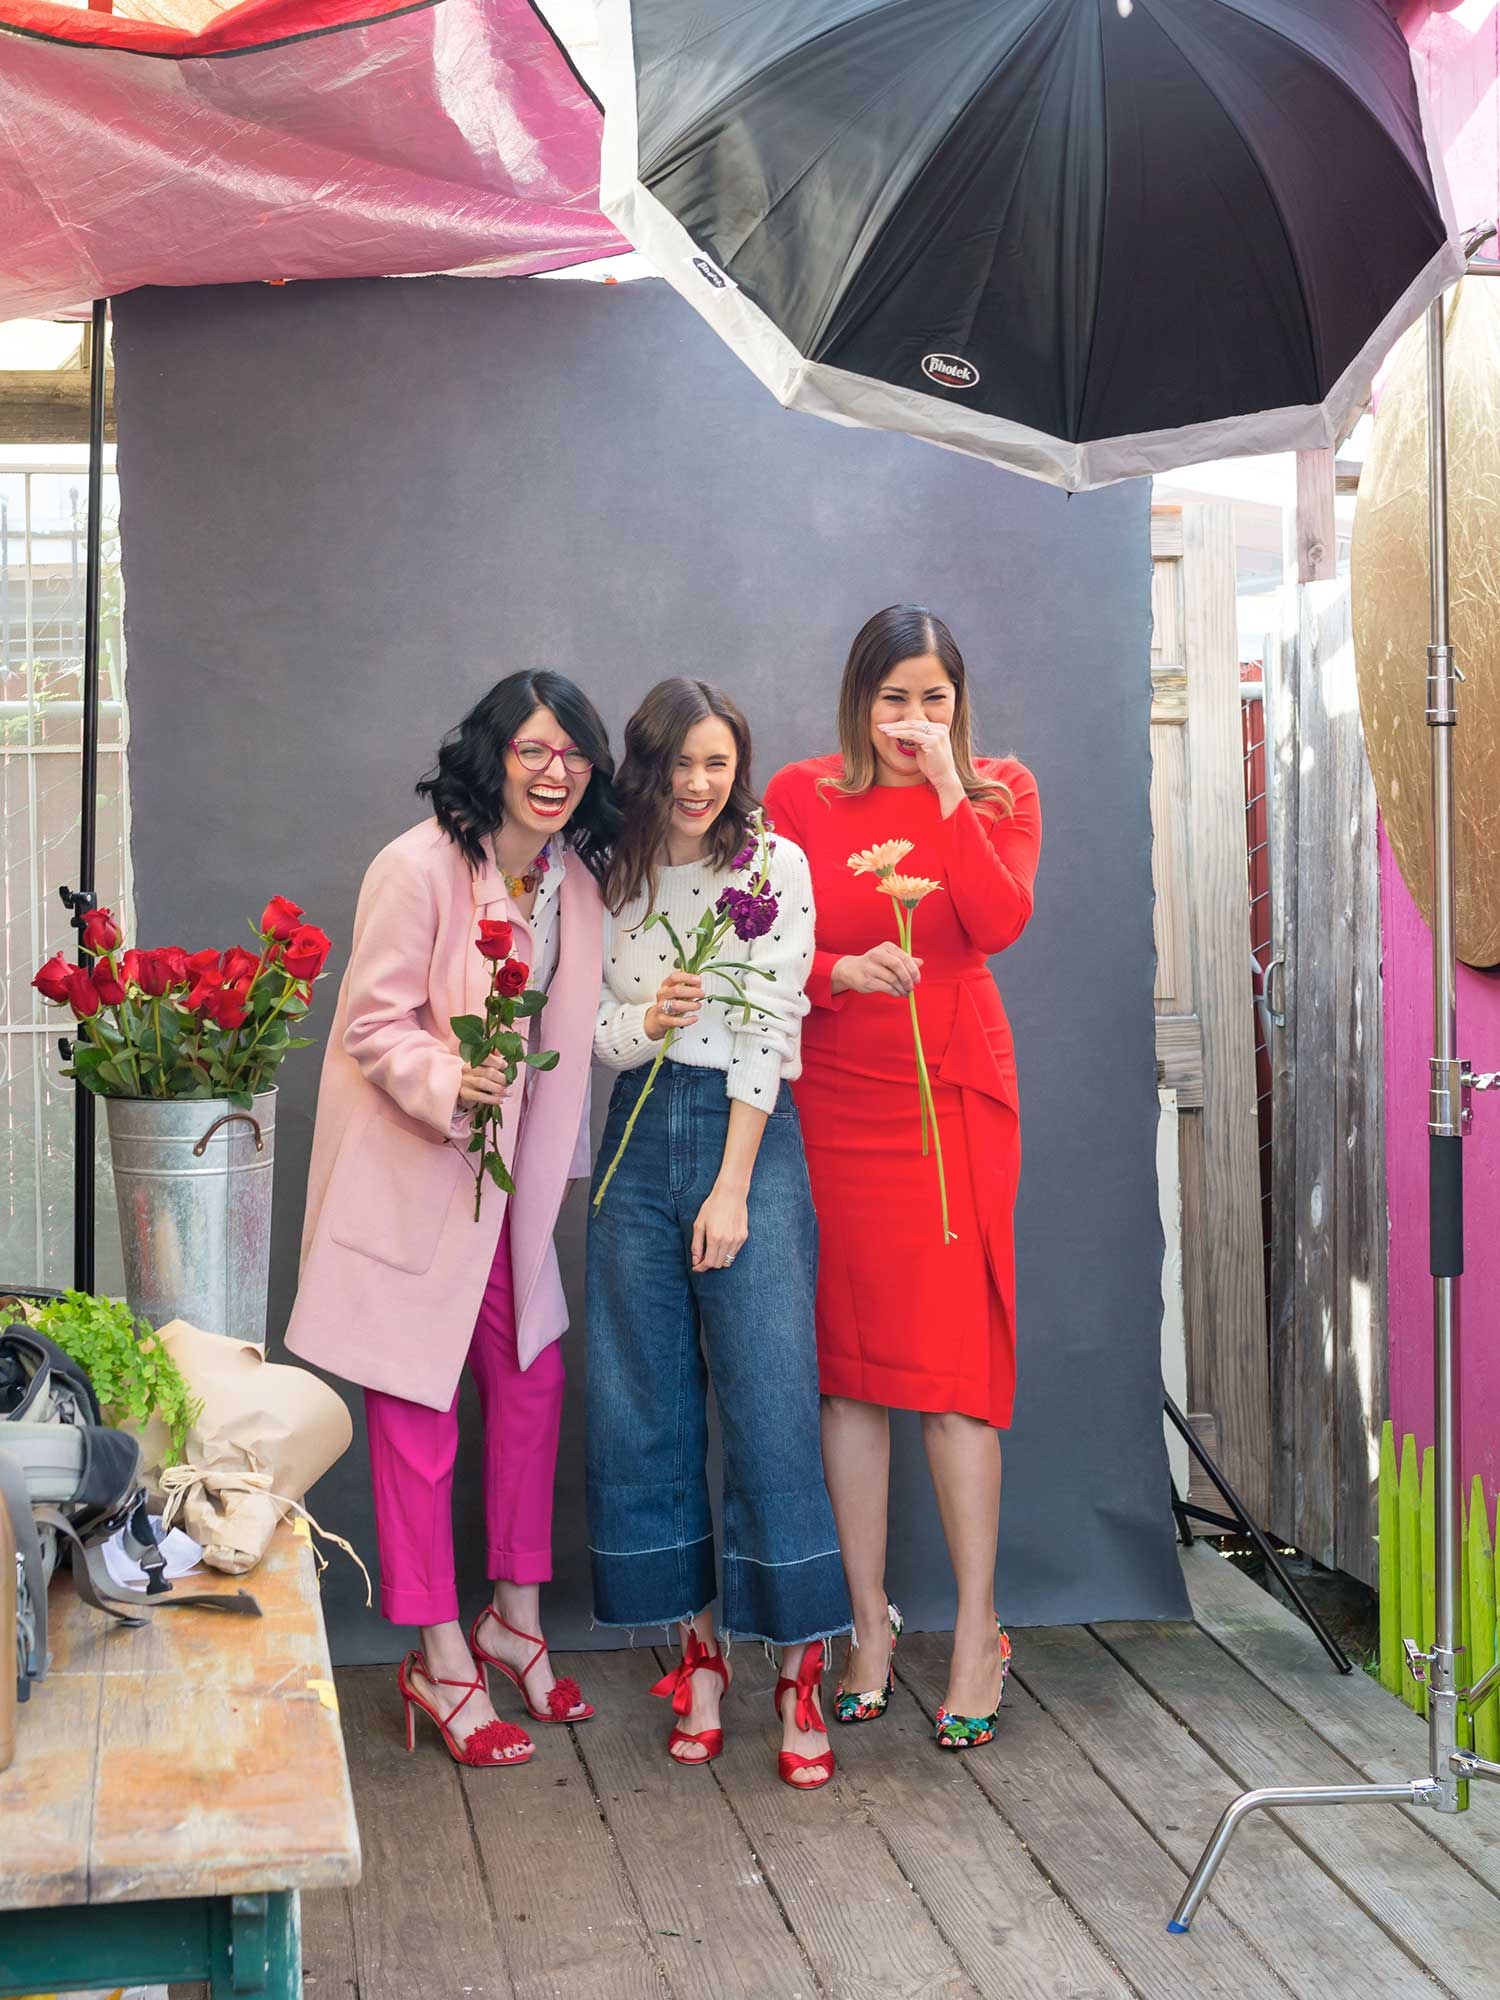 Jenna-Pilant-Lucky-Little-Mustardseed-Galentine's-Day-Floral-Fun-Pura-Sol-Photography-9